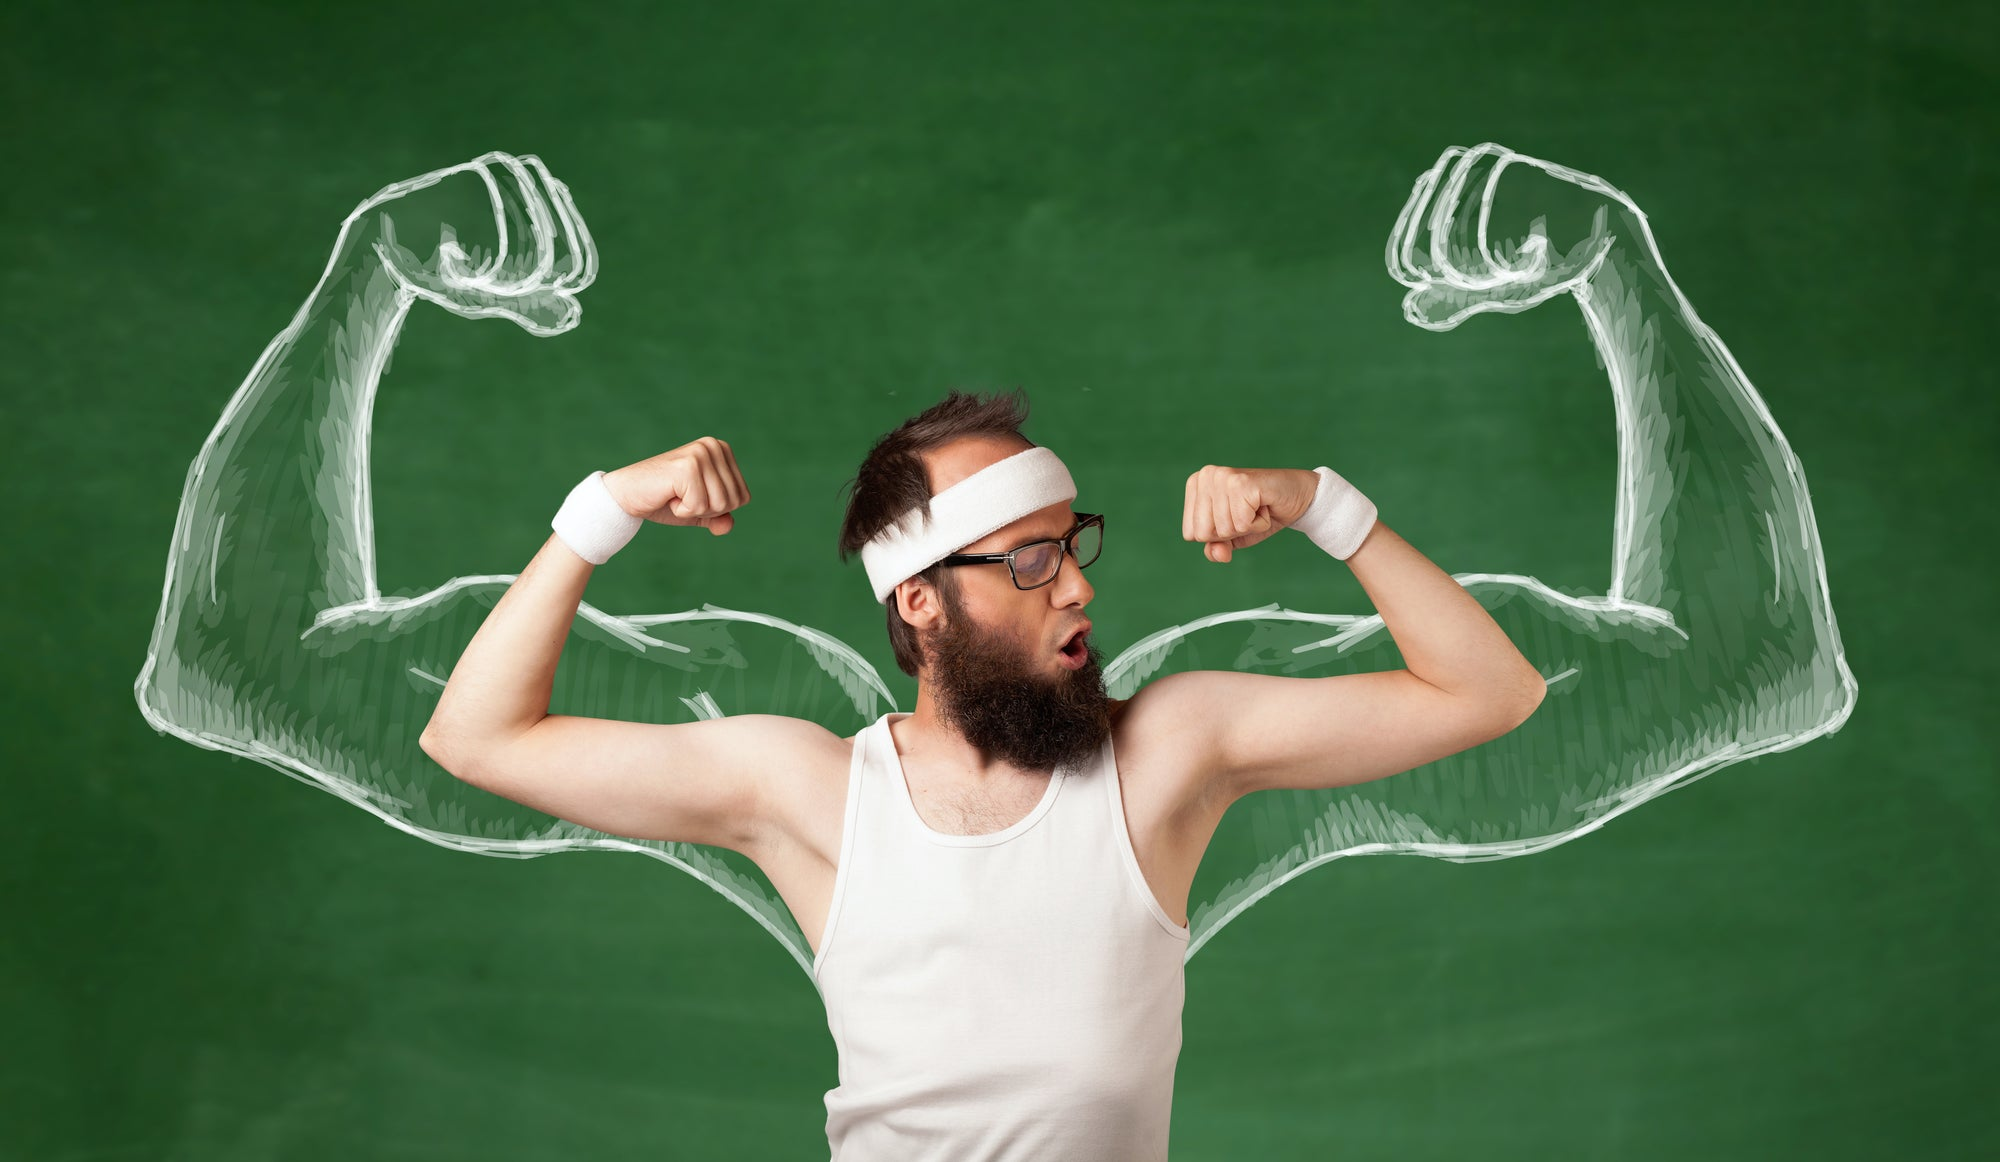 Biceps Not Growing: Here are 5 Possible Reasons Why